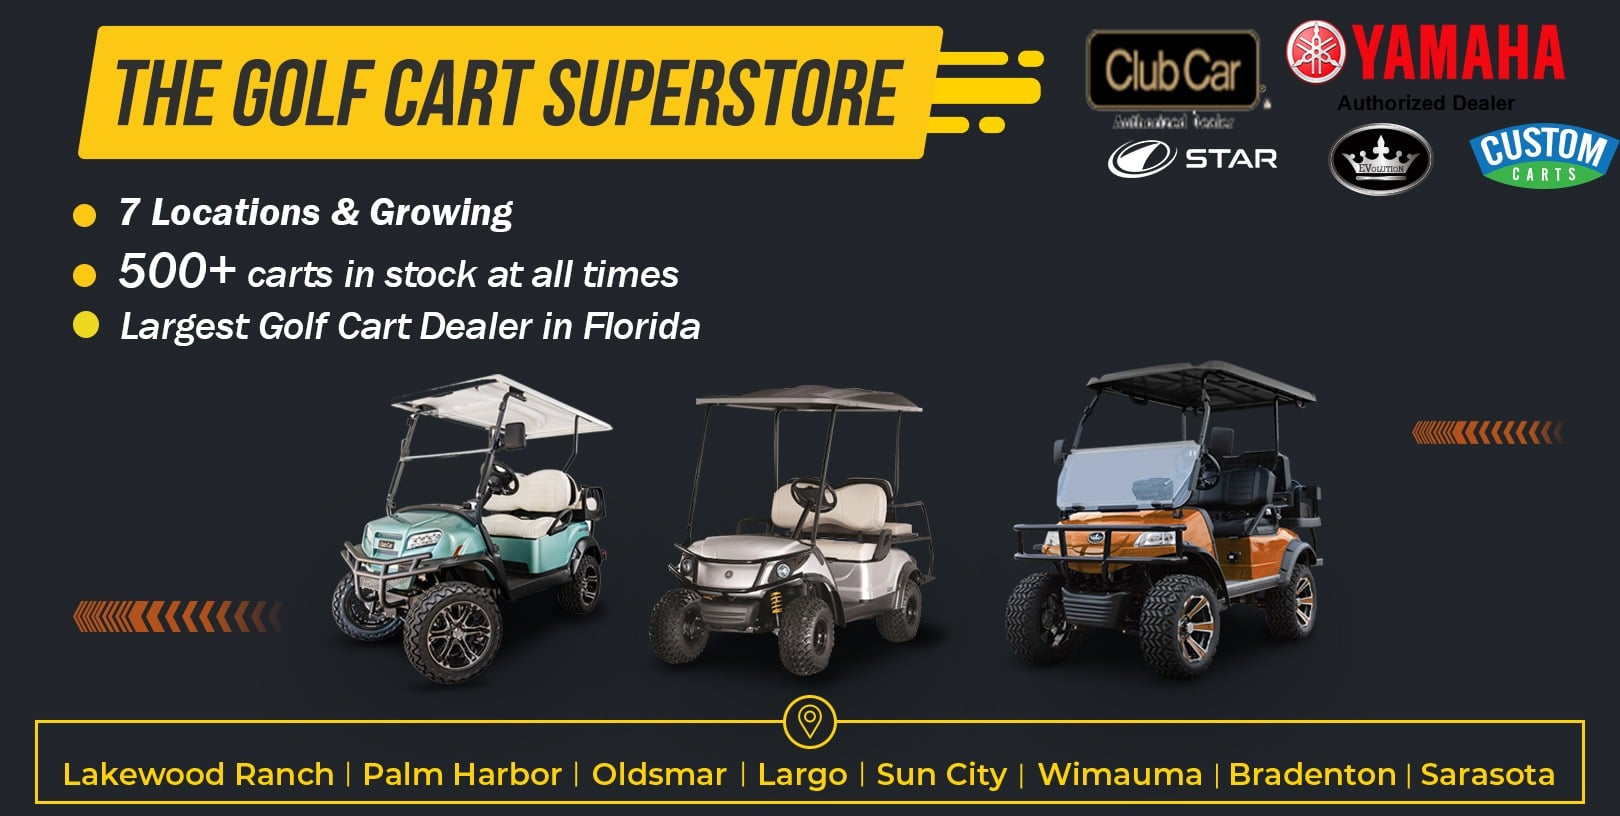 The Golf Cart Superstore